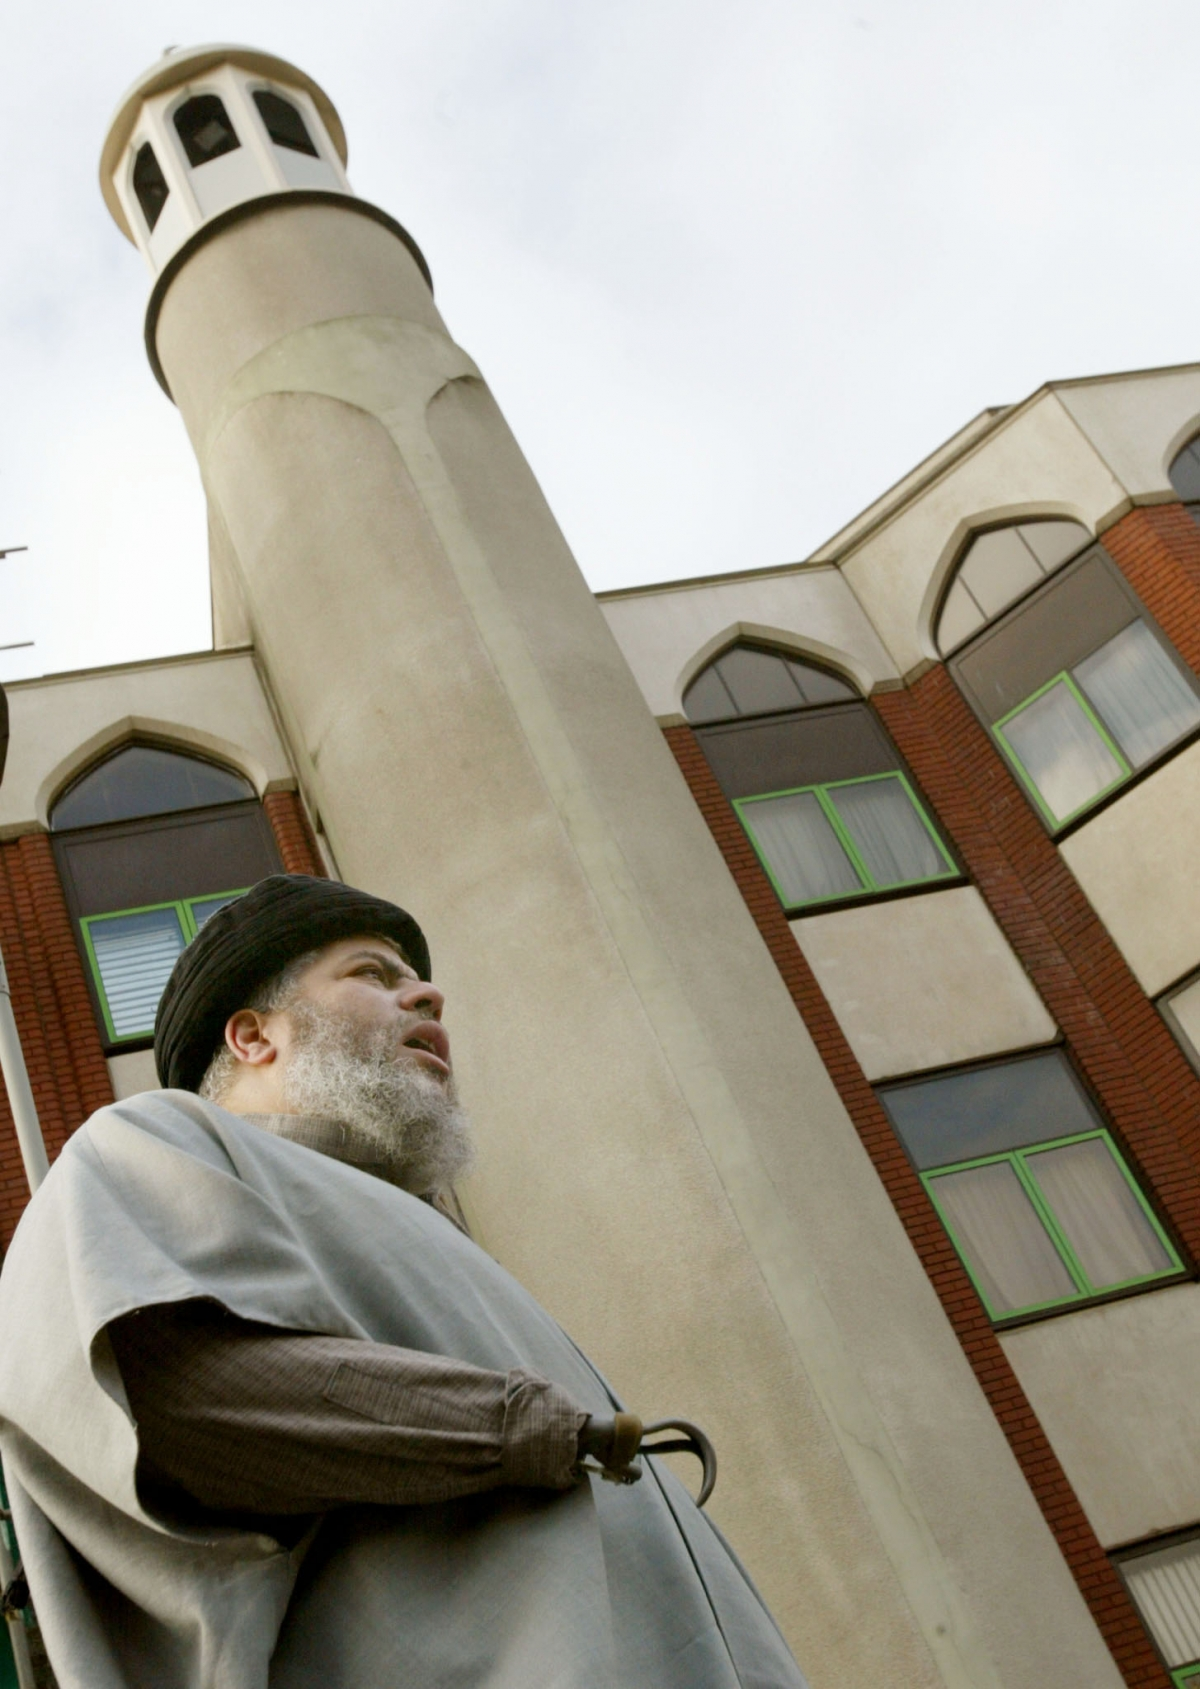 Muslim cleric,Abu Hamza al-Masri, leads prayers outside the North London Central Mosque, in the Finsbury P